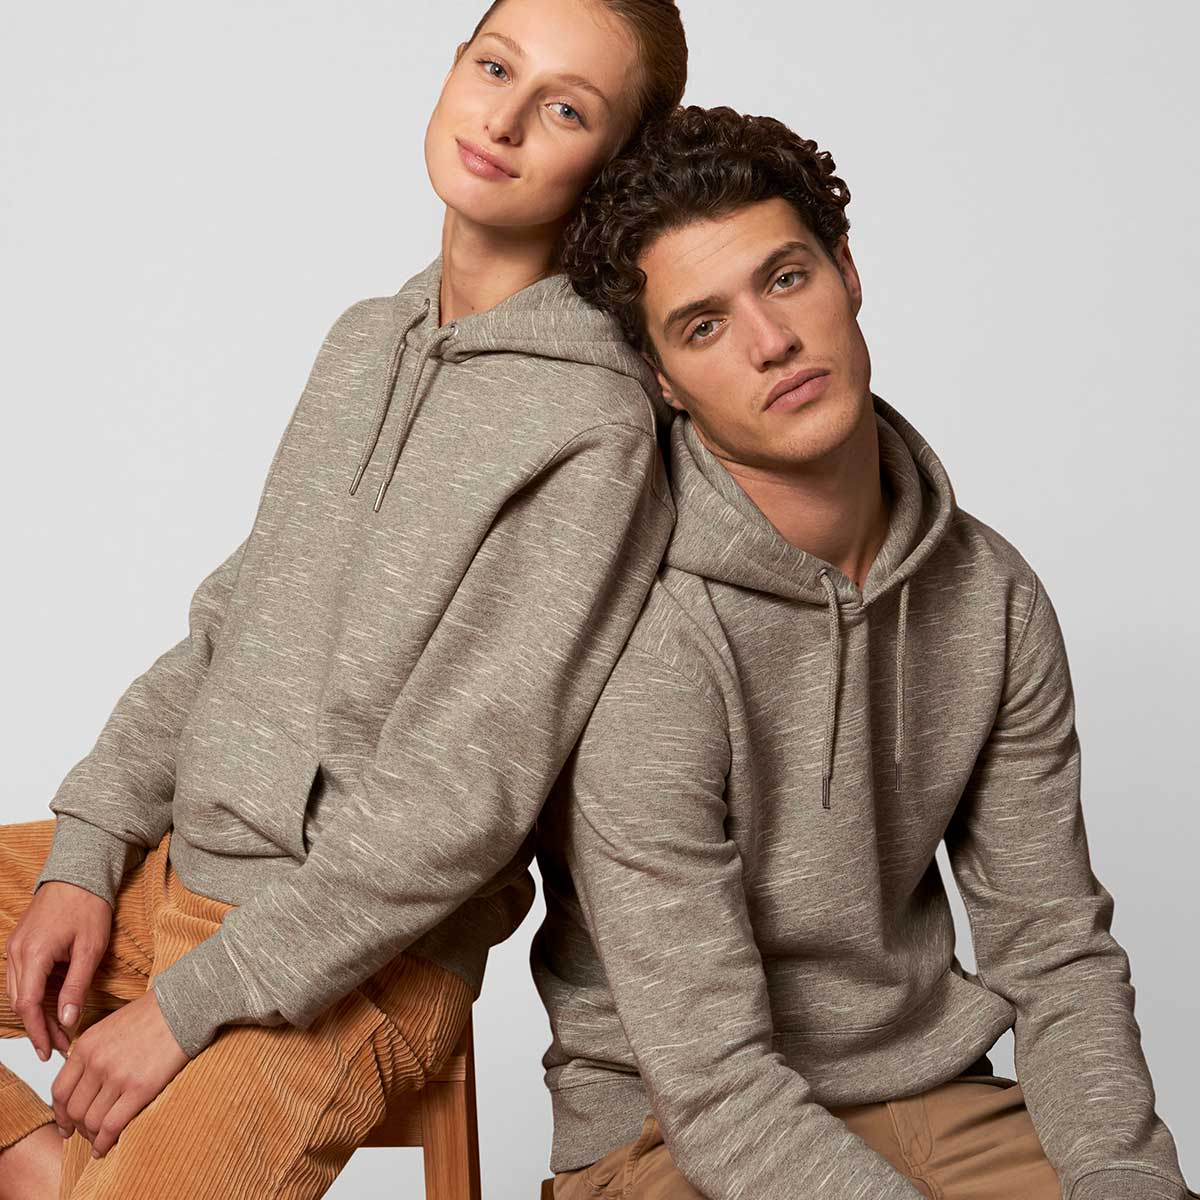 Organic cotton Stanley/Stella Heathered Wood Branded Hoodies by Framme